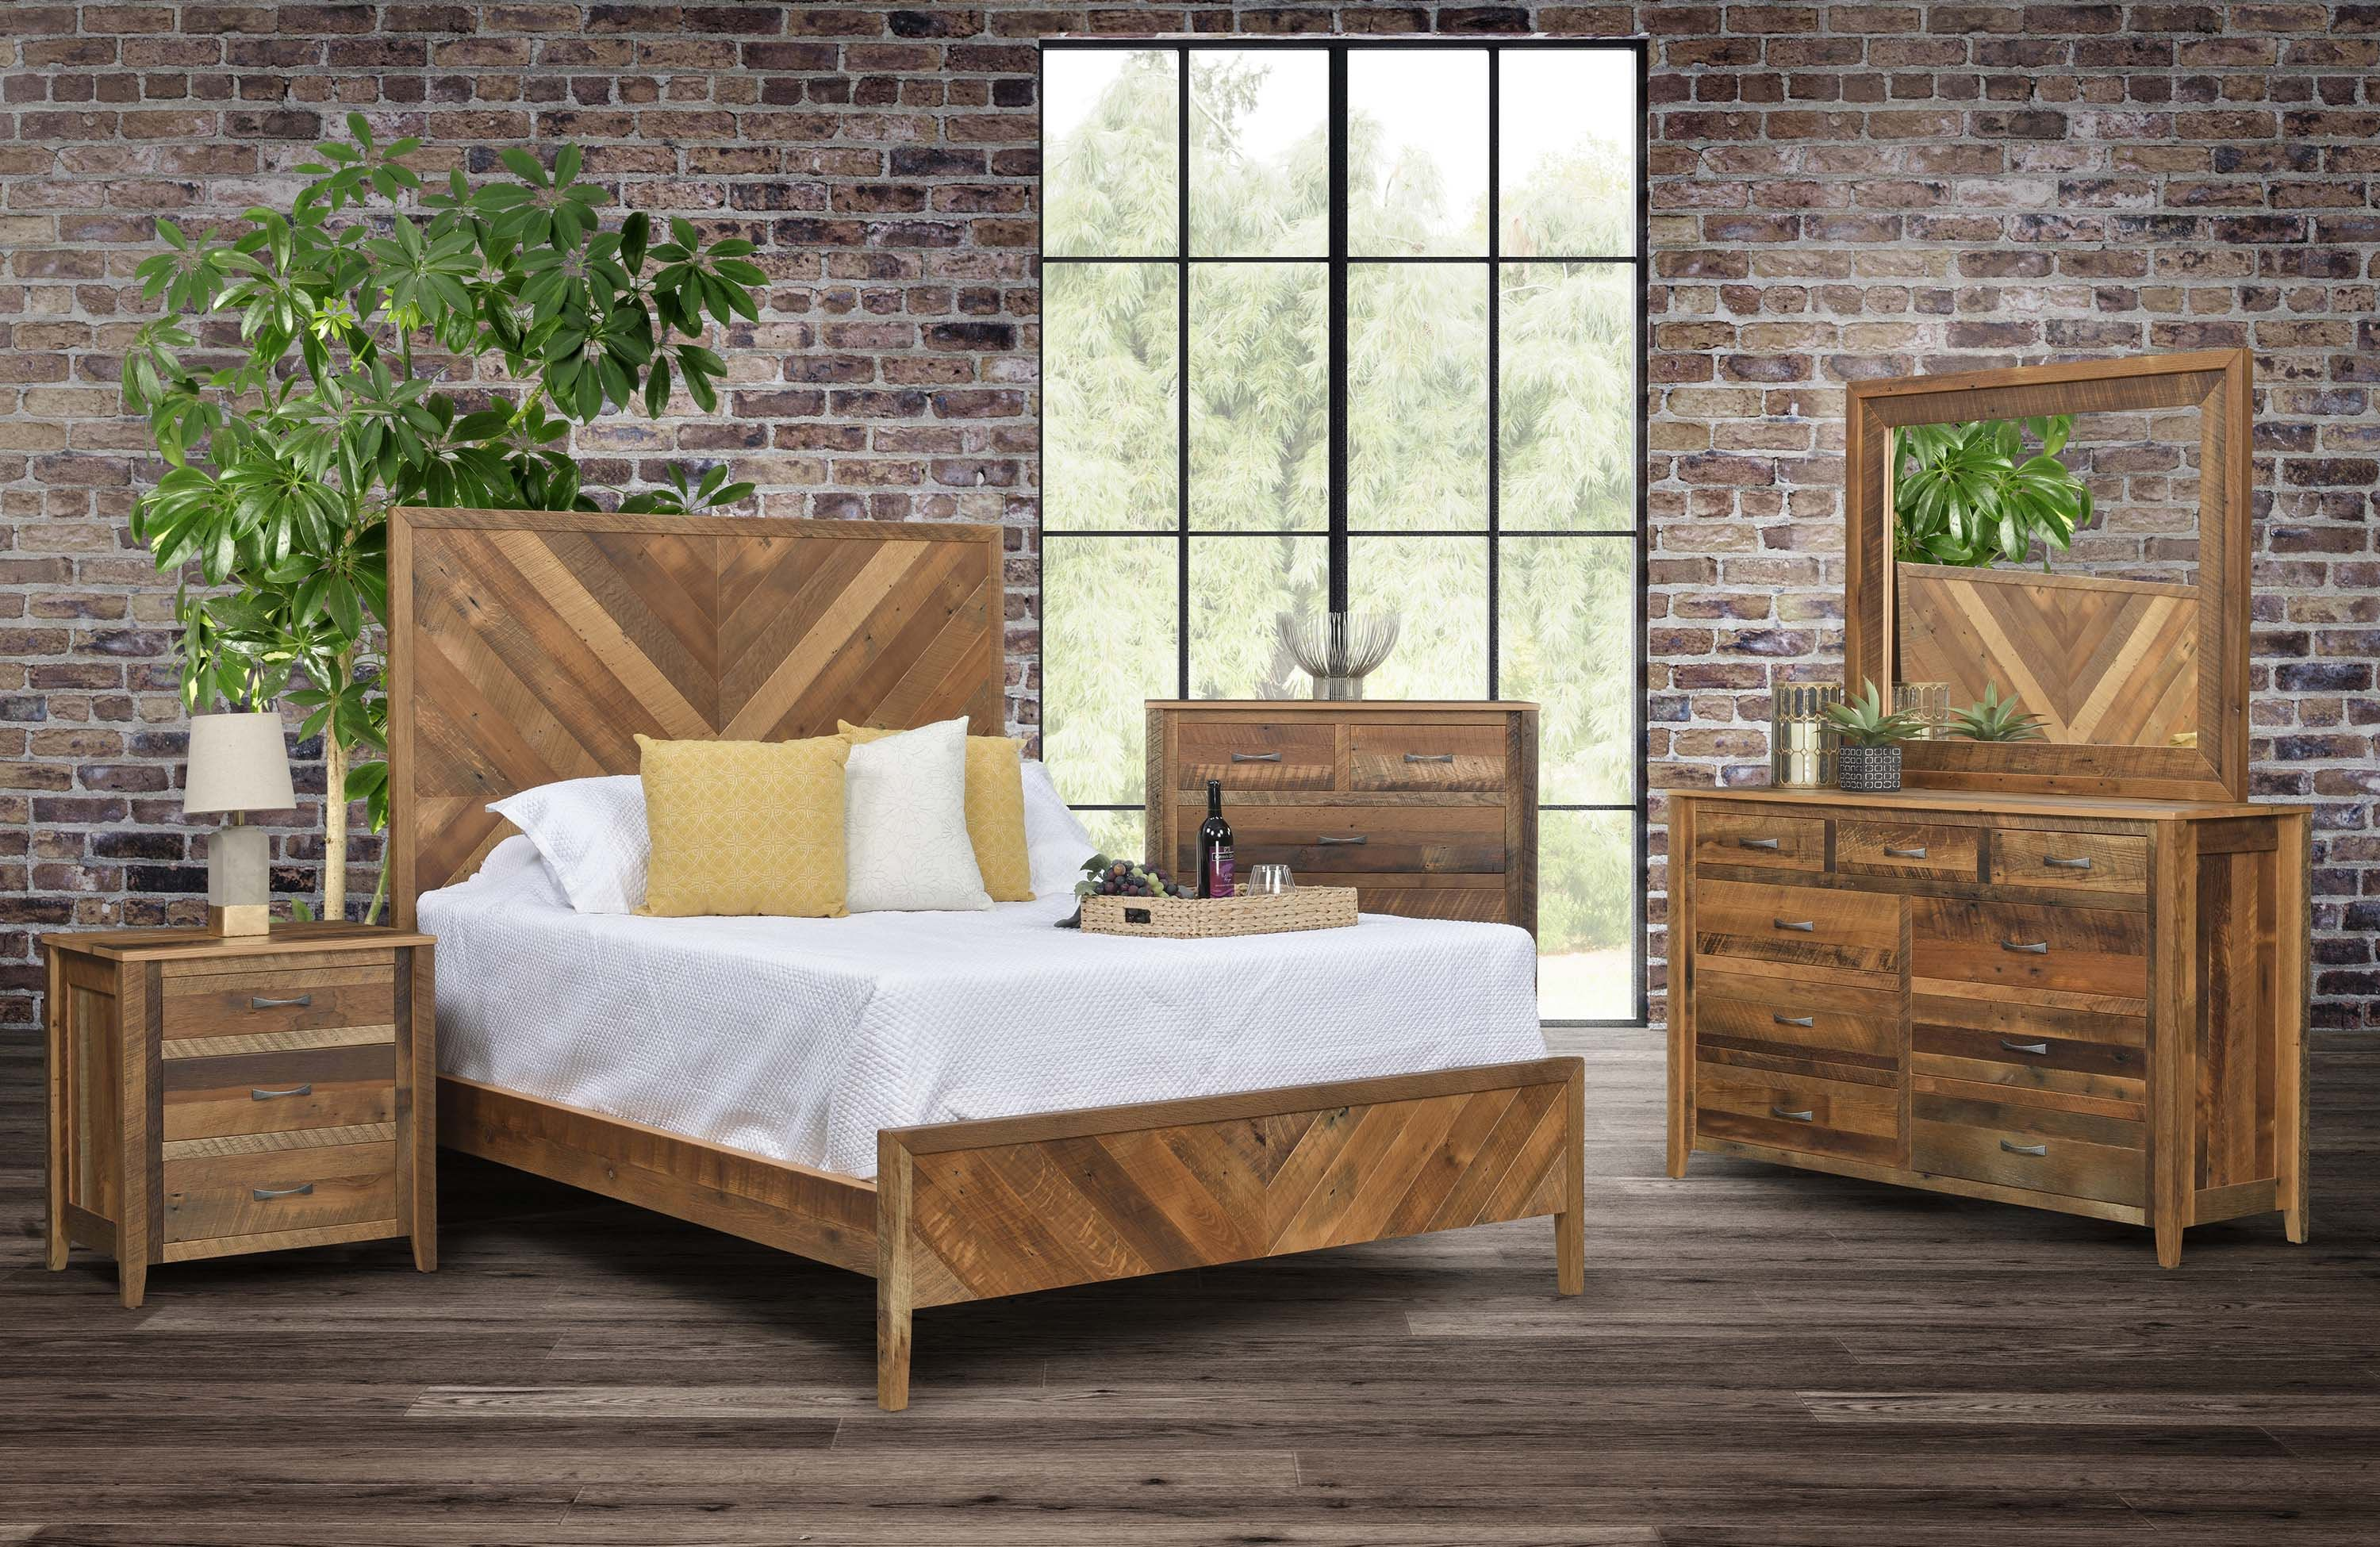 Shefford Bedroom Suite Reclaimed Wood Barn Wood Rustic